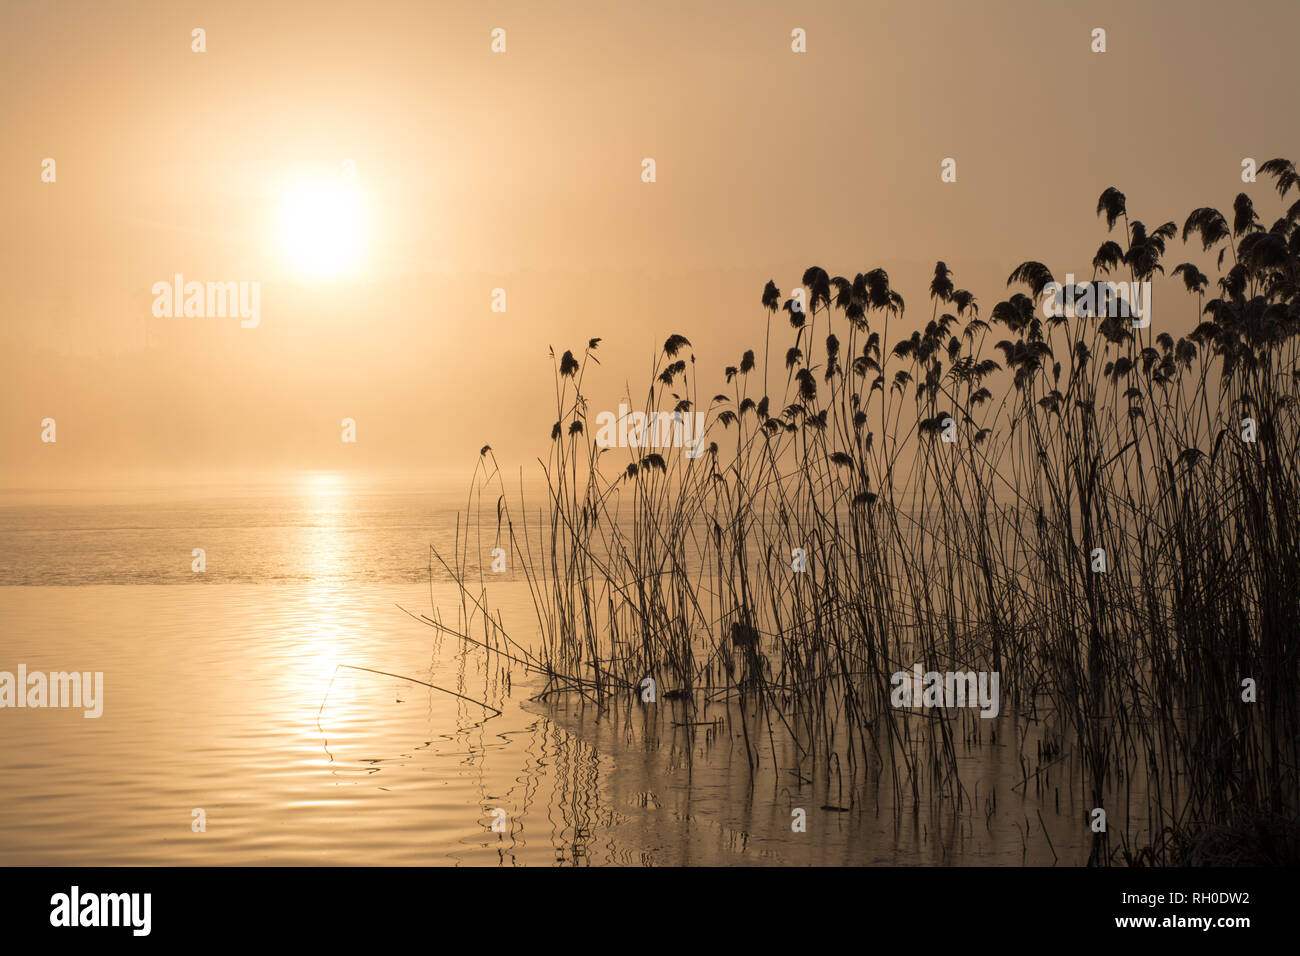 frensham-great-pond-surrey-uk-31st-january-2019-uk-weather-following-the-coldest-night-of-the-winter-so-far-this-morning-started-with-freezing-fog-the-sun-soon-shone-through-producing-beautiful-wintry-scenes-RH0DW2.jpg